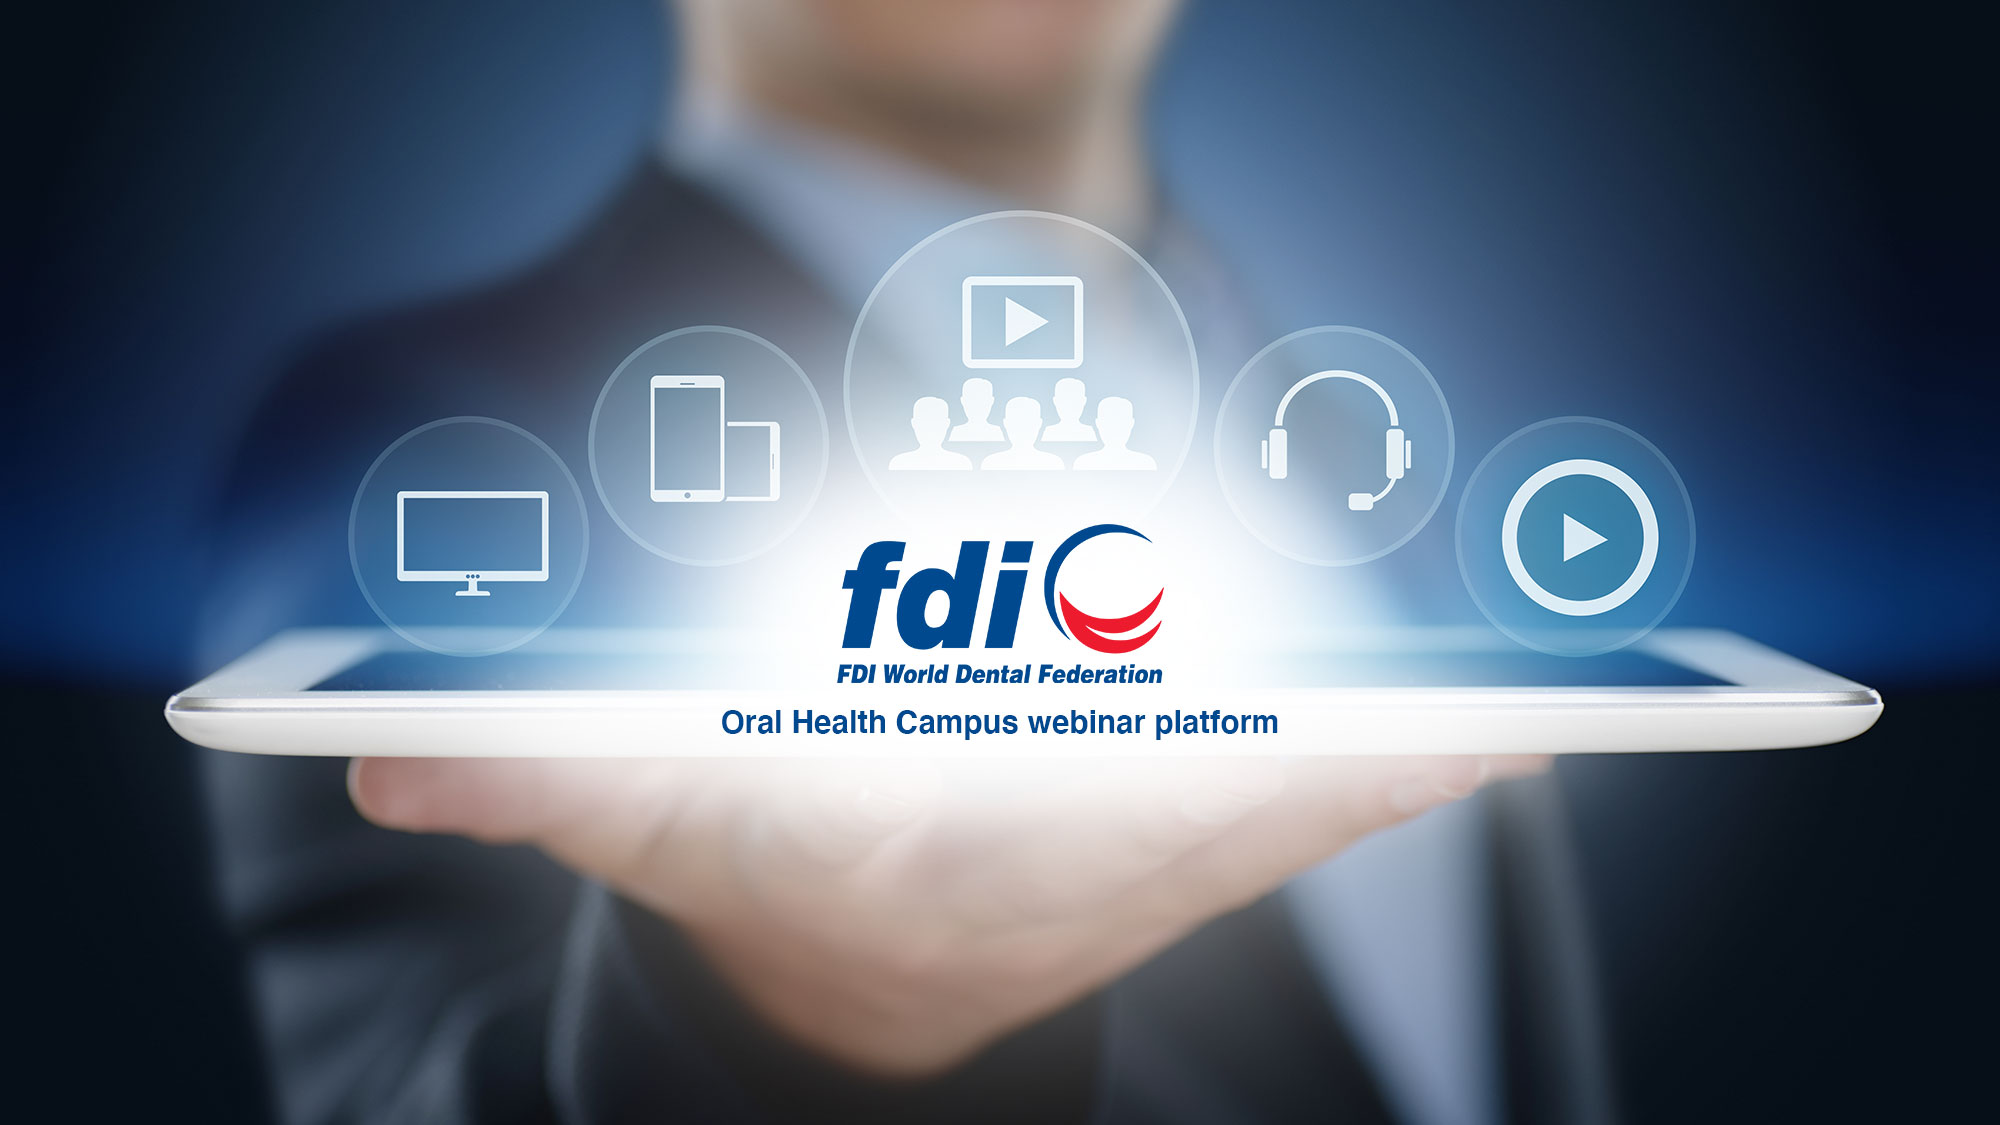 FDI to provide continuing education with own Oral Health Campus